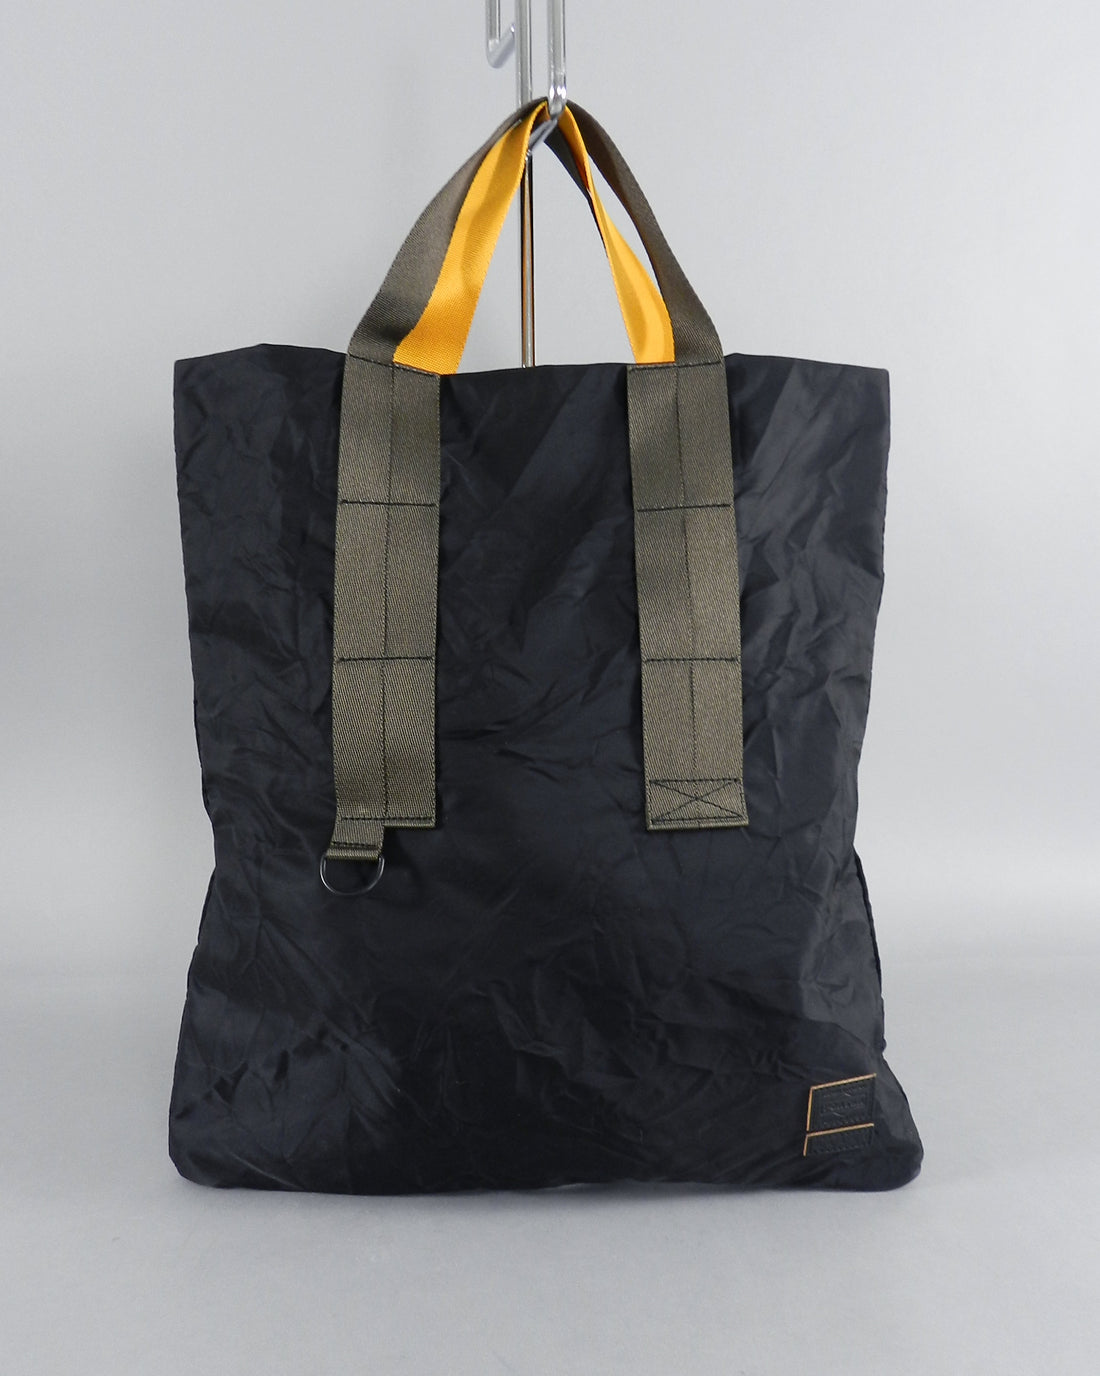 MARNI x PORTER Black Nylon Tote Bag